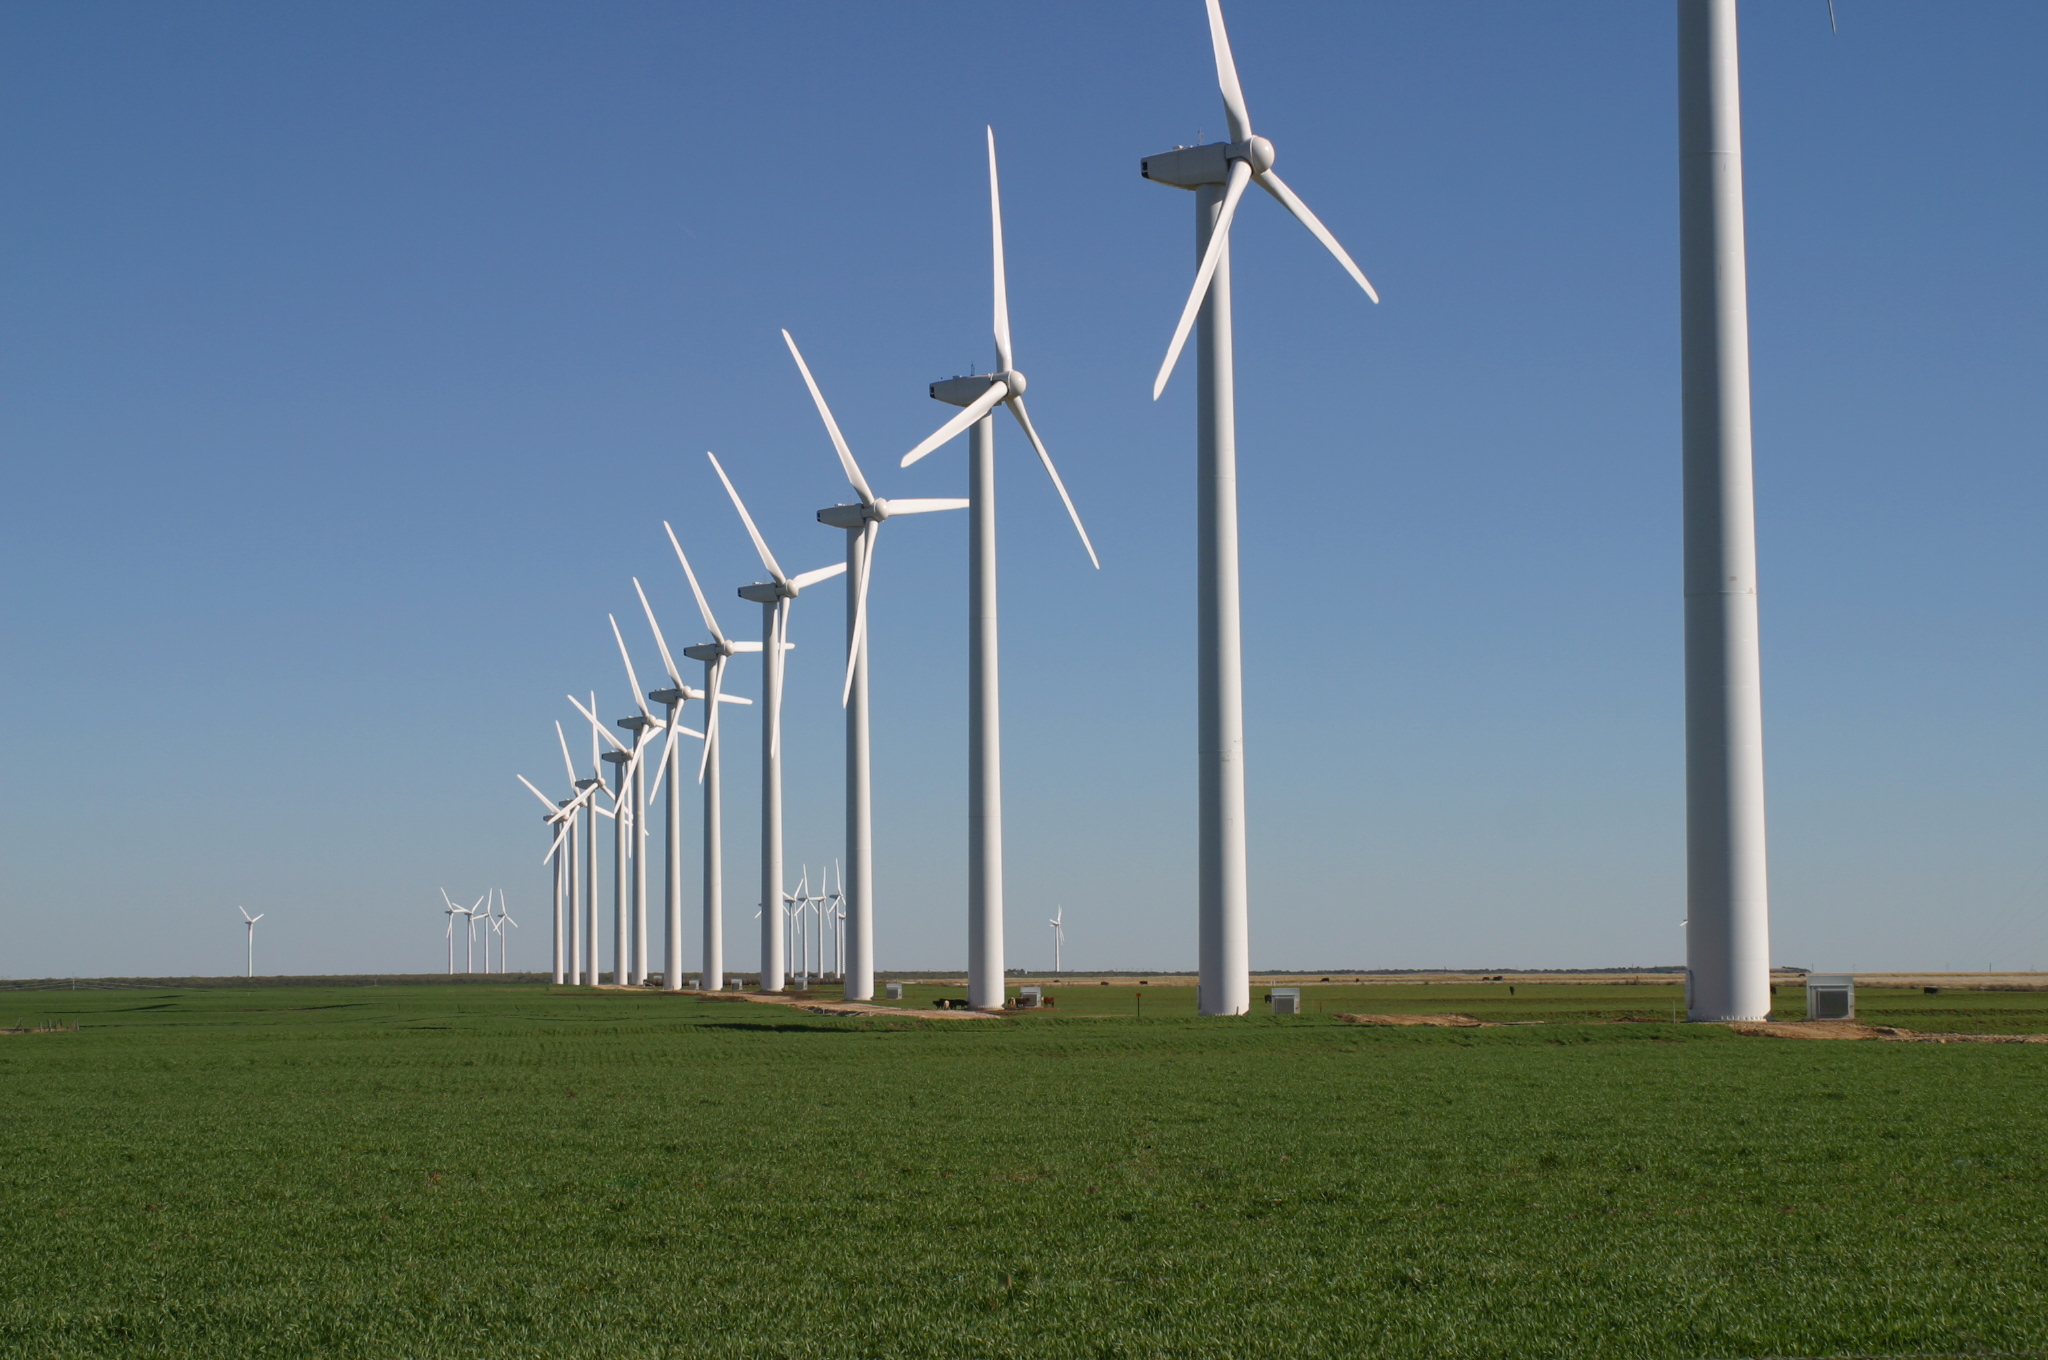 https://i1.wp.com/upload.wikimedia.org/wikipedia/commons/8/8b/GreenMountainWindFarm_Fluvanna_2004.jpg